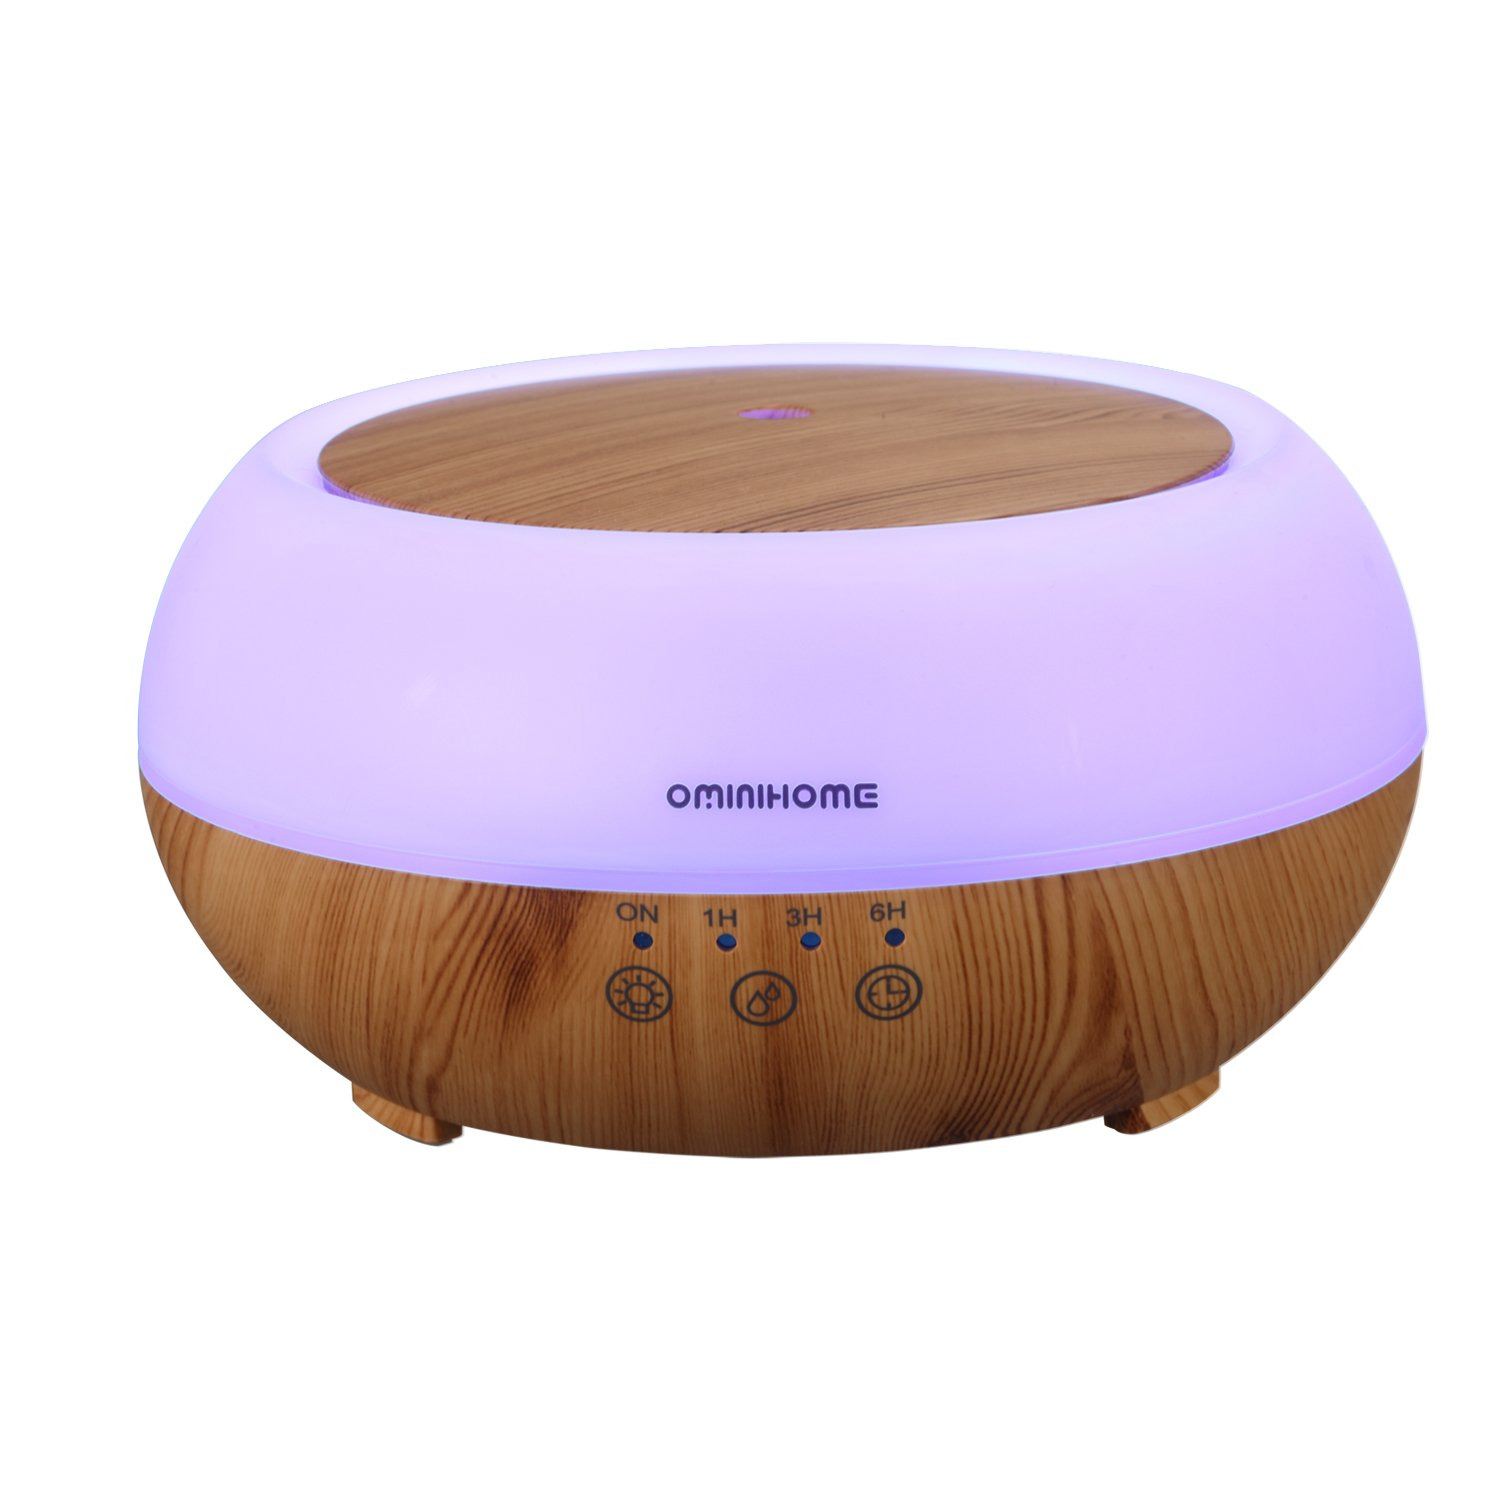 Ominihome Aromatherapy Essential Oil Diffusers, 300ml Ultrasonic Air Humidifier with 4 Timer Settings,7 Color Changing LED Waterless Auto off Wood Grain, 2 Mist Mode, College Graduation Gift